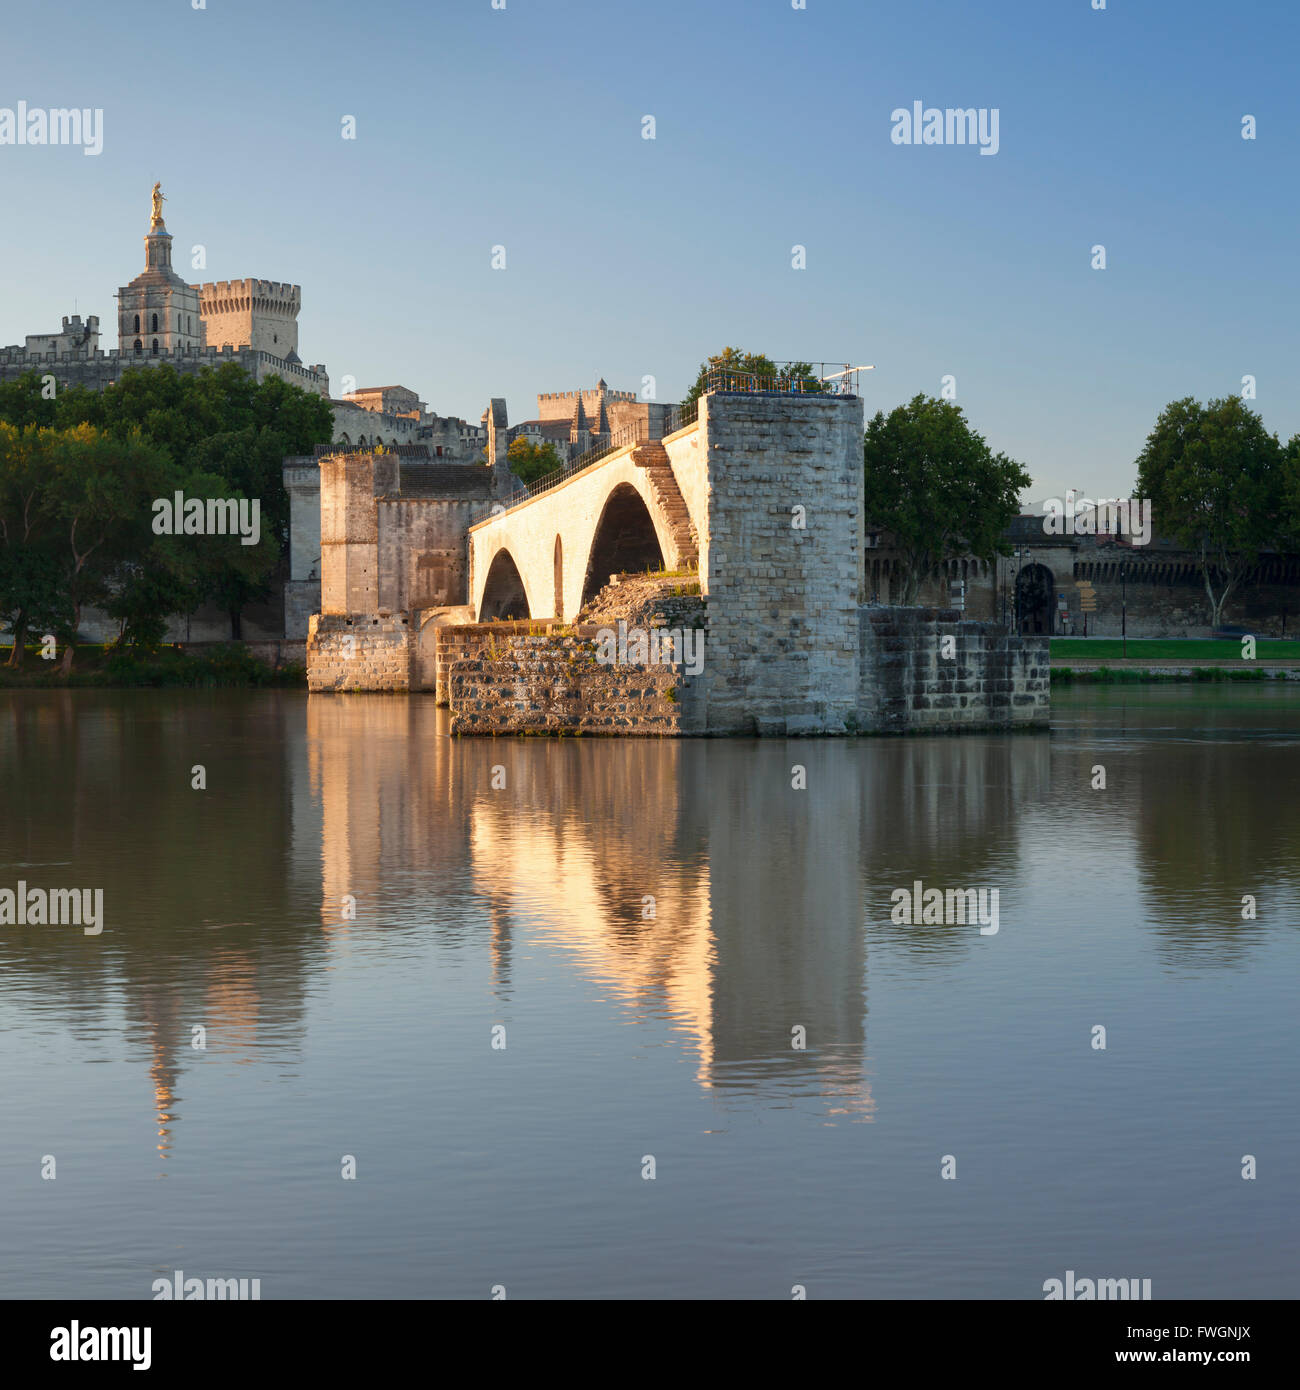 Bridge St. Benezet over Rhone River with Papal Palace behind, UNESCO, Avignon, Vaucluse, Provence-Alpes-Cote d'Azur, - Stock Image